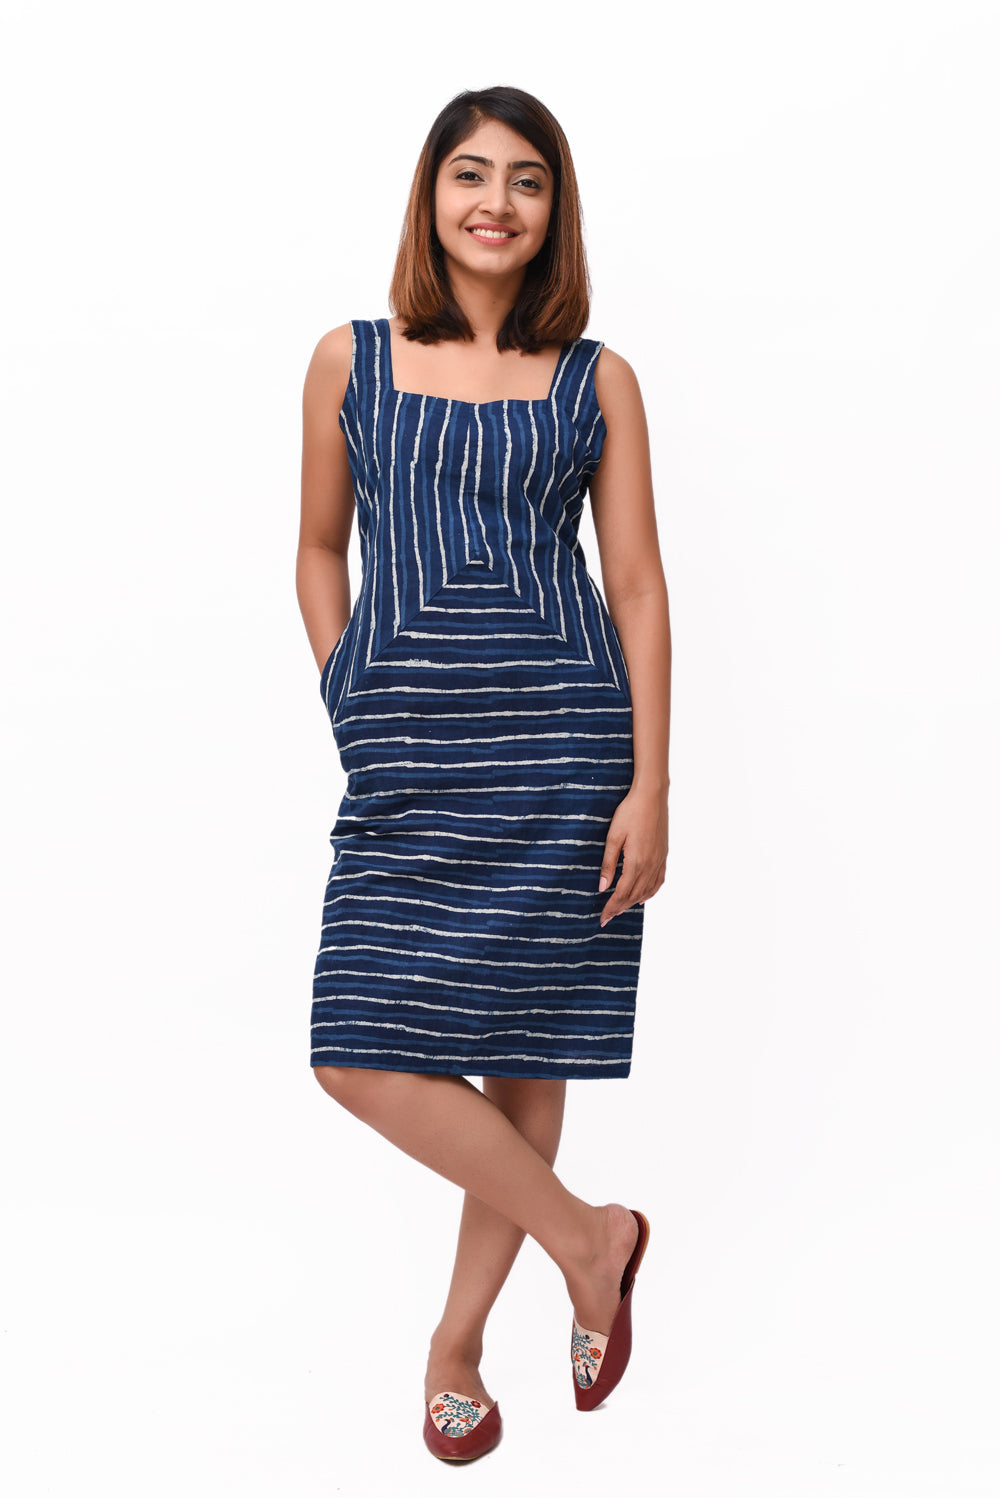 Blue Block Print Stripe Cotton Dress - GleamBerry